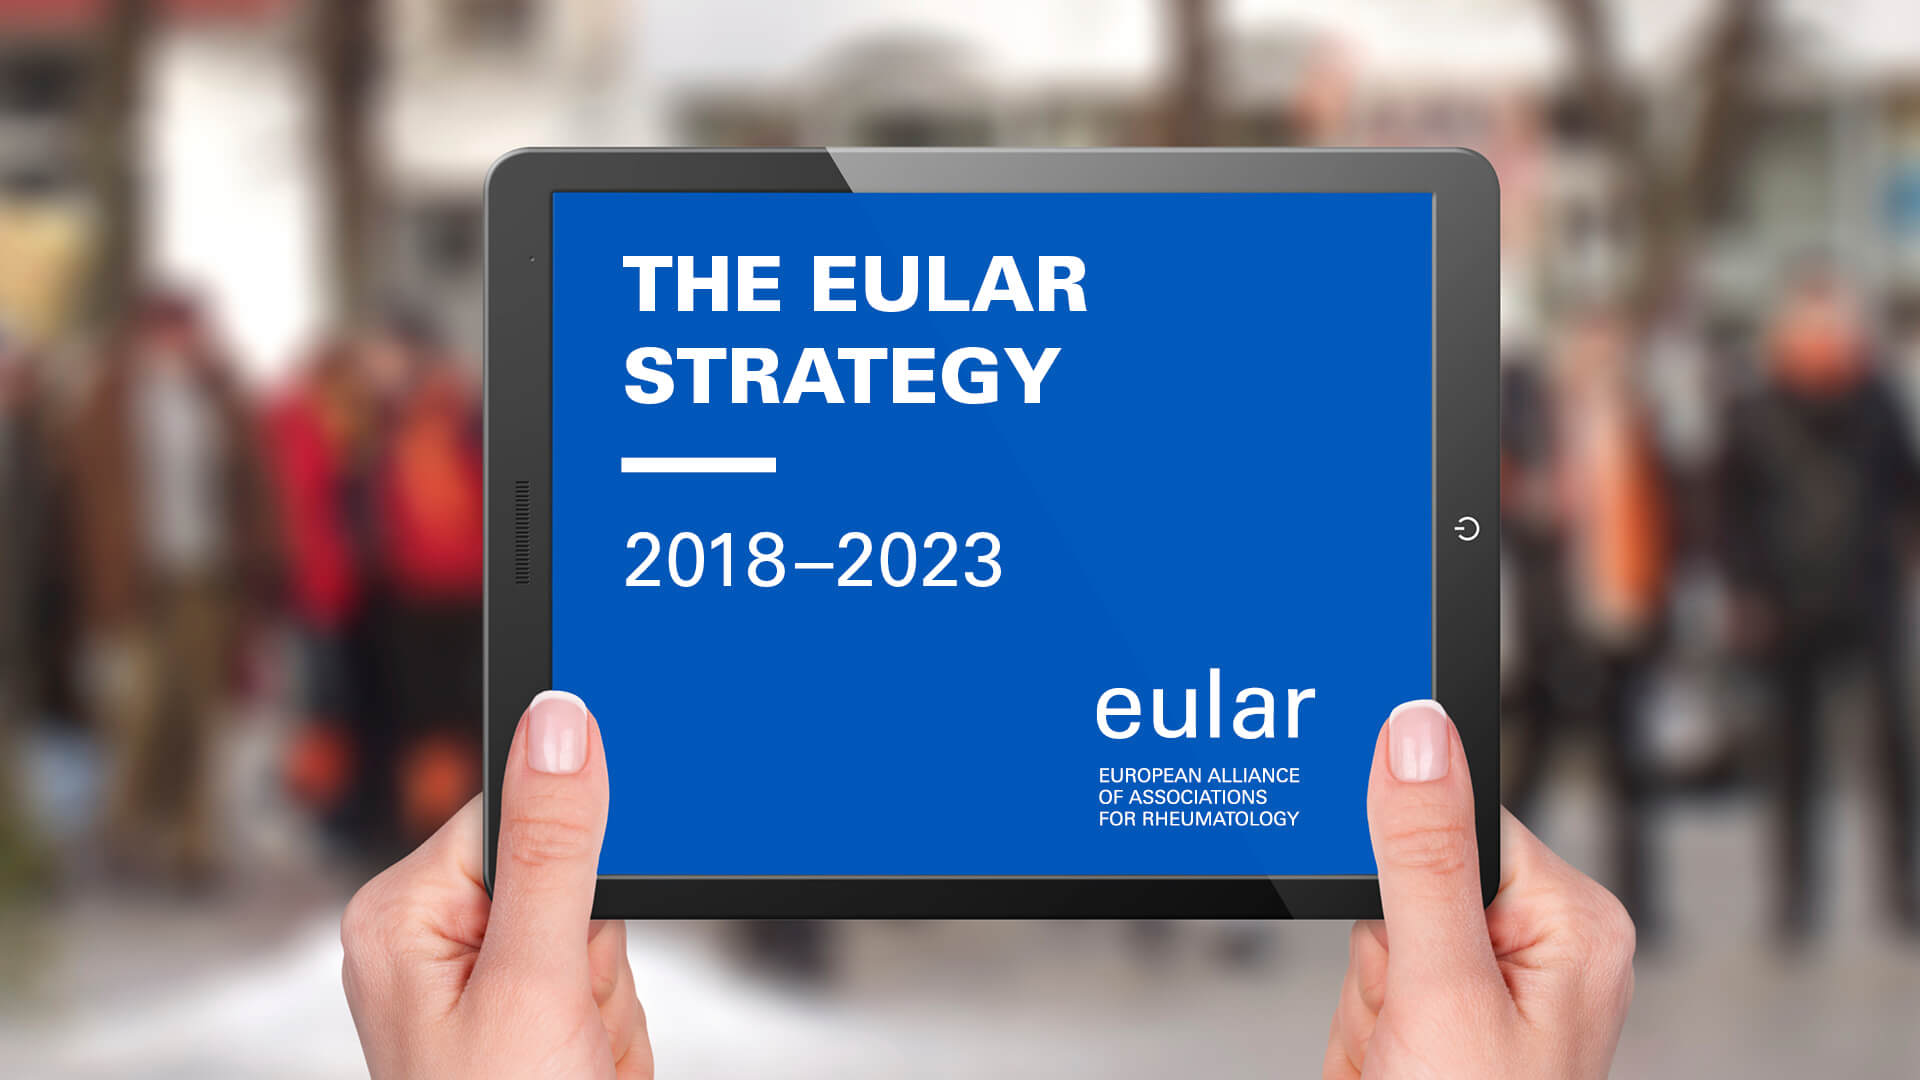 01_title_EULAR_strategy_slides_2021.jpg